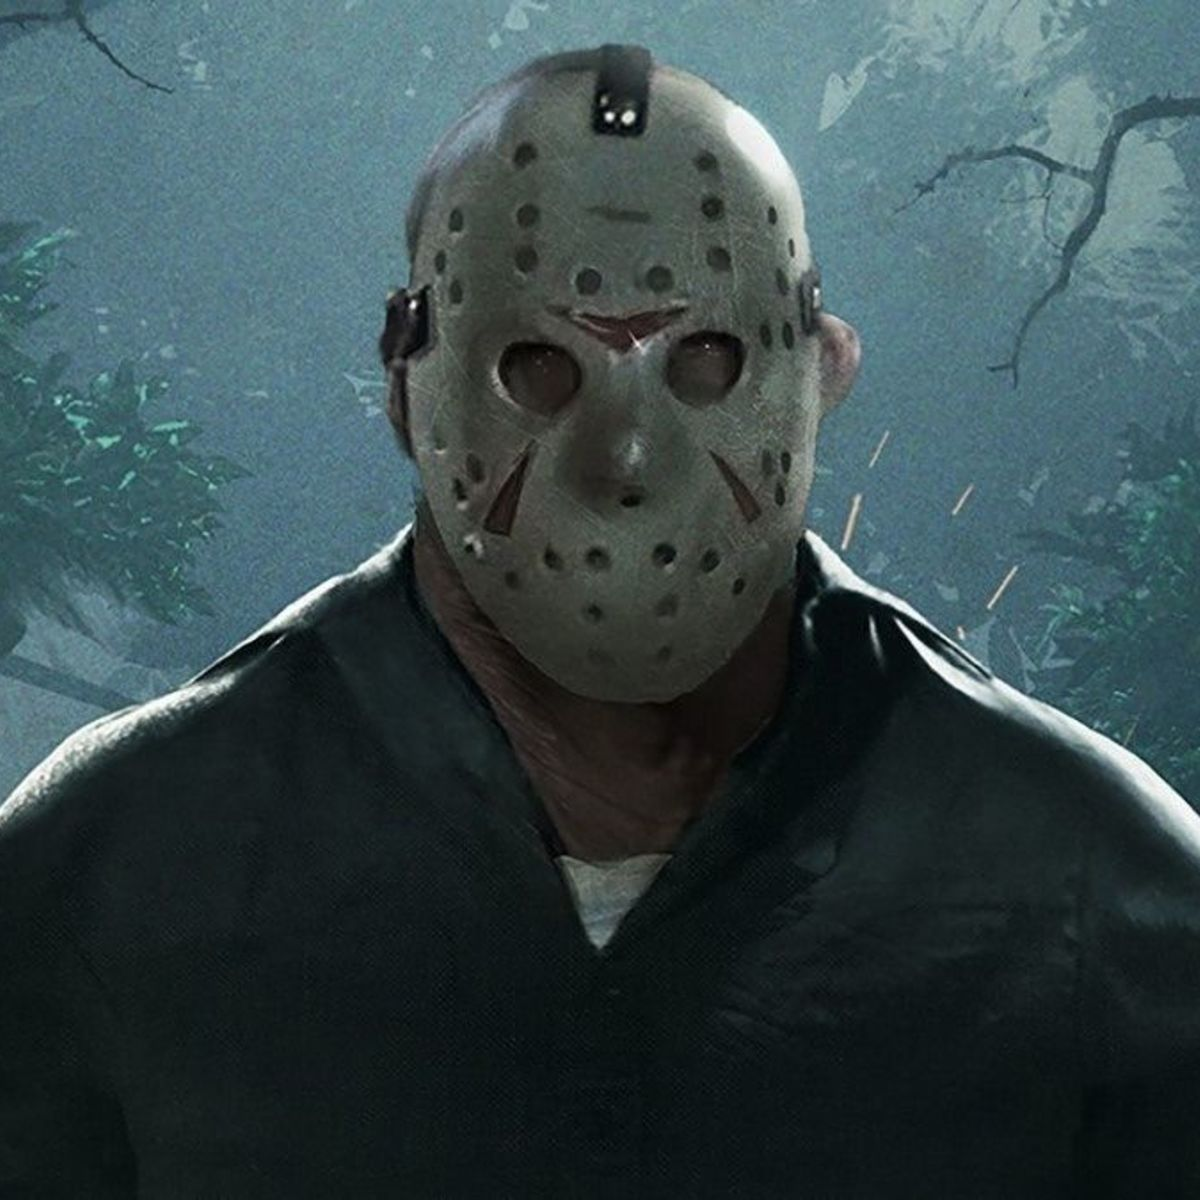 Friday the 13th spinoff could follow Creighton Duke as he hunts down ...